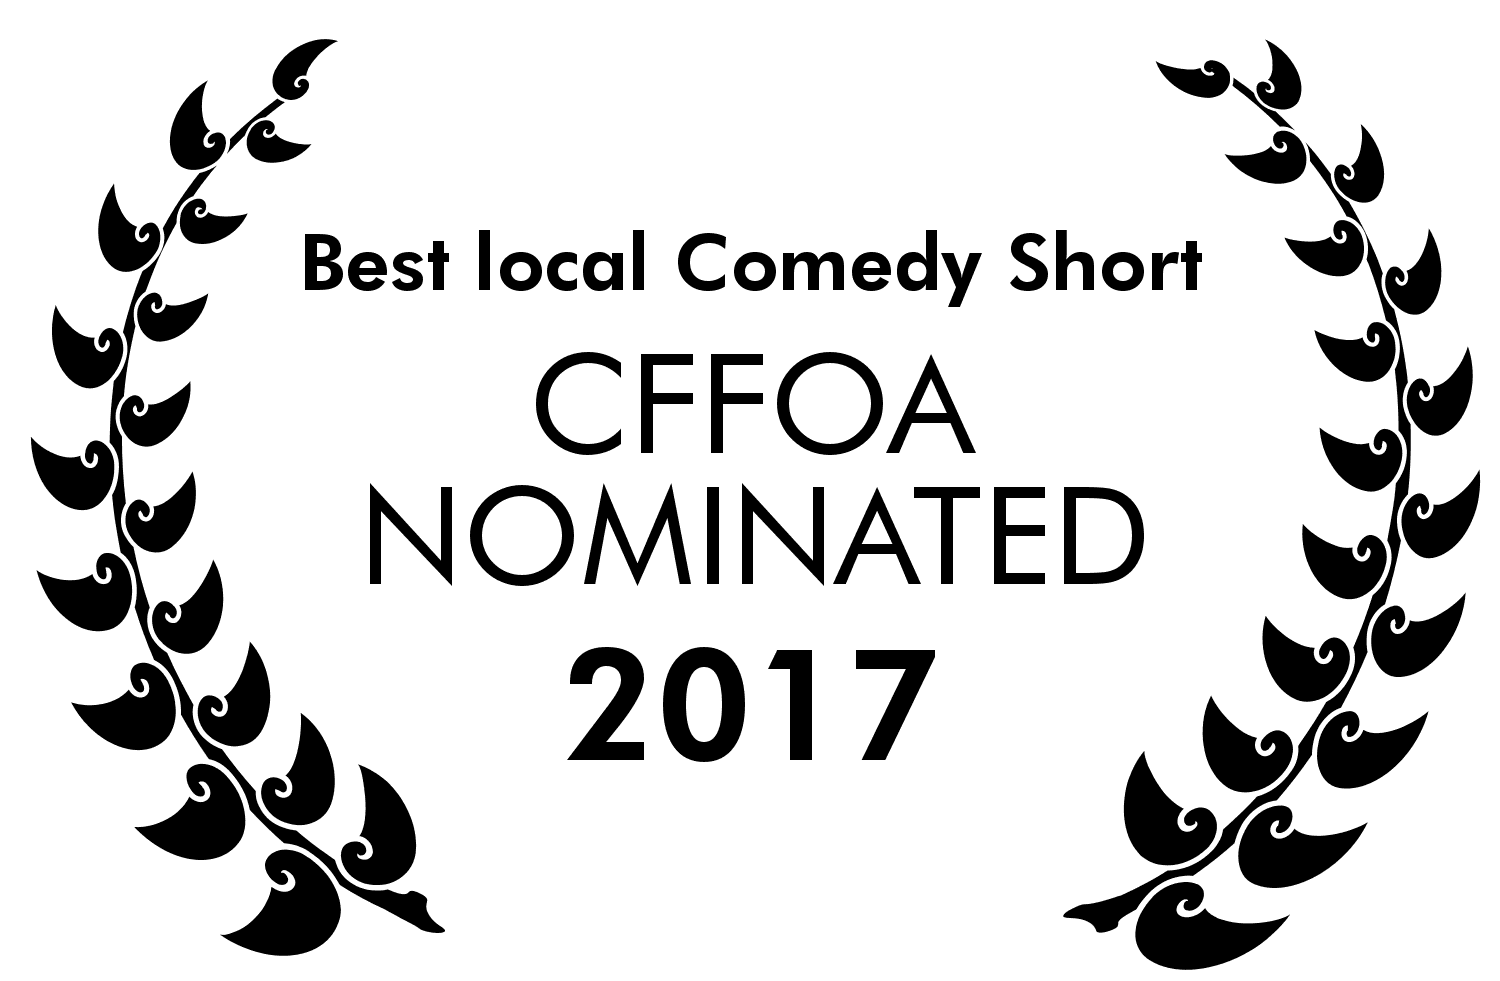 SHJBEST LOCAL NOMINATED.png